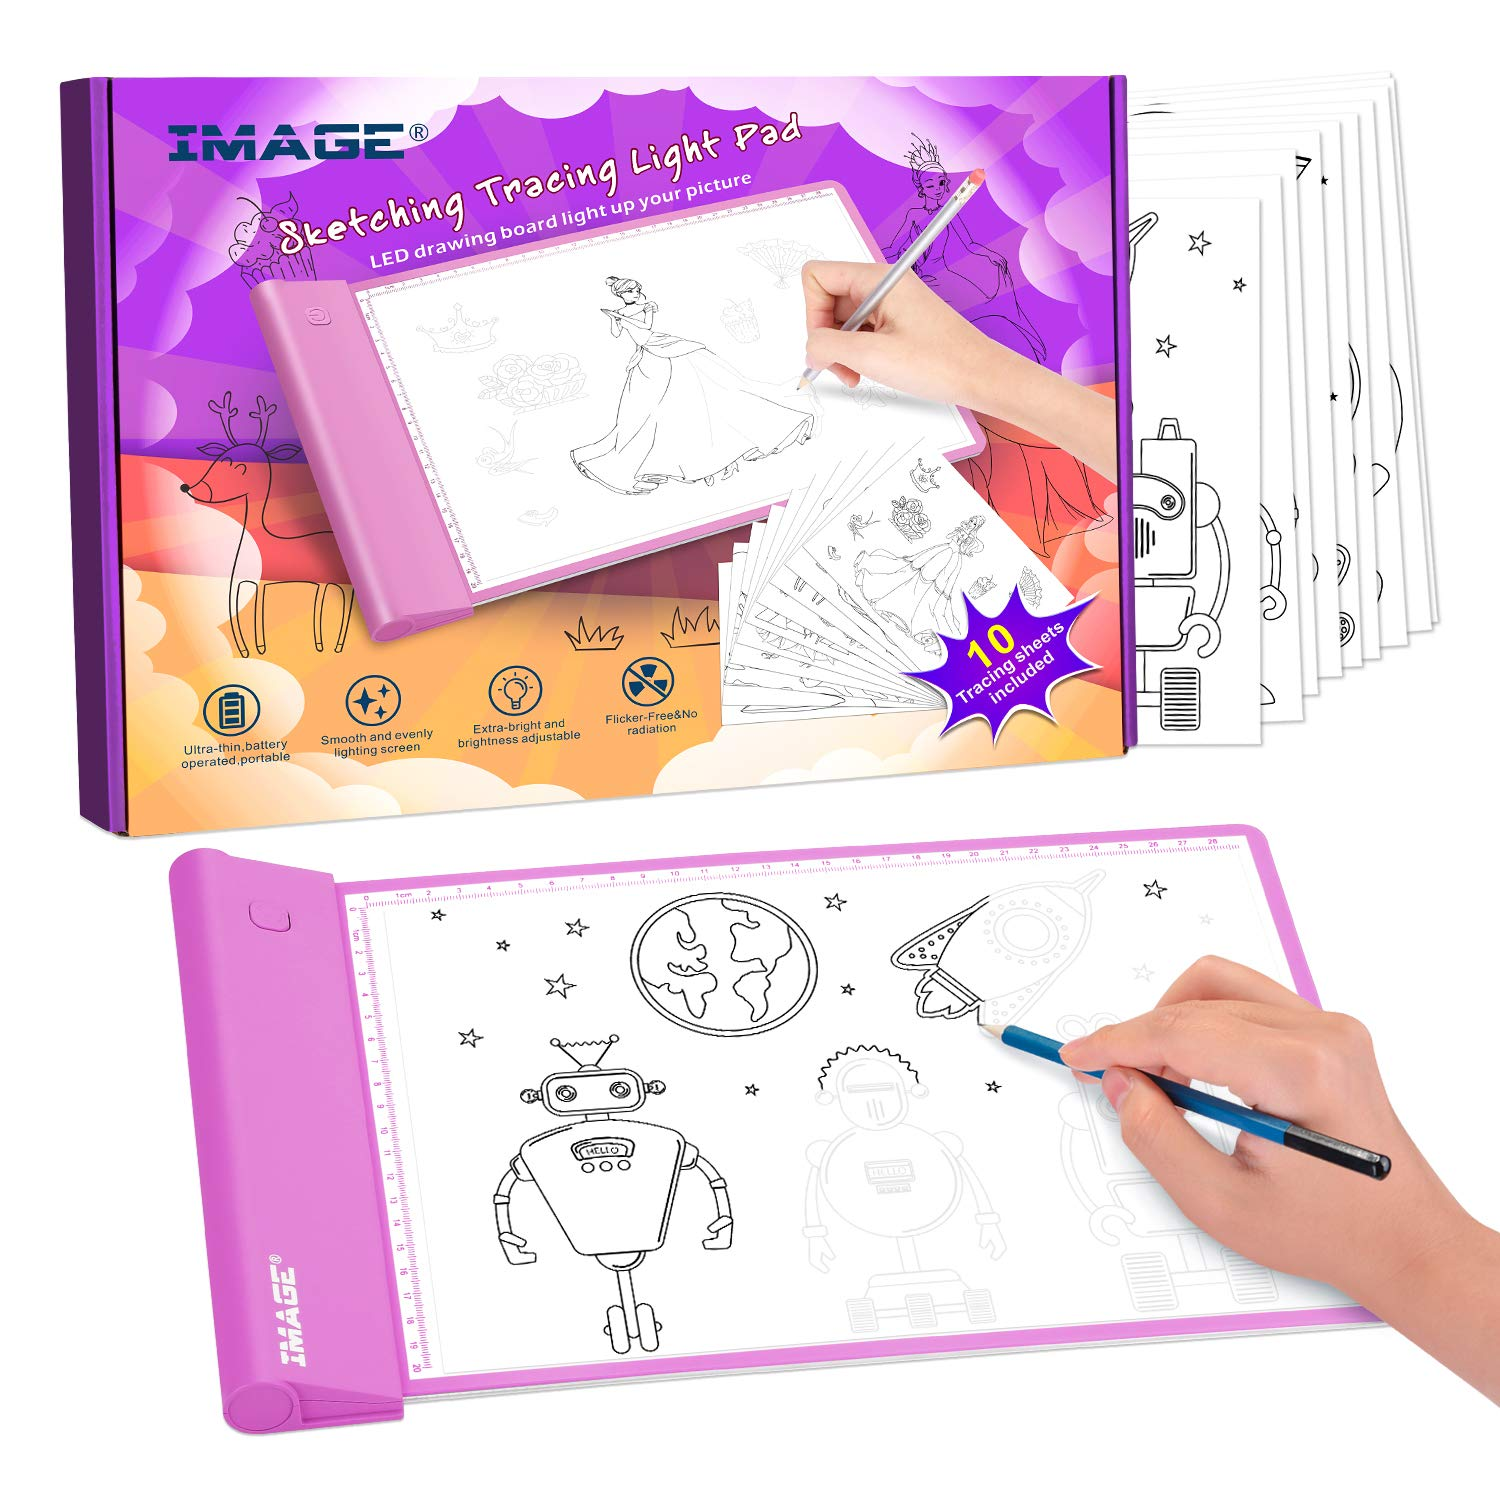 Image Light Up Tracing Pad Pink Drawing Tablet Coloring Board For Kids Children Toy Gift For Girls Boys Ages 6 7 8 9 10 Includes 10 Traceable Sheets